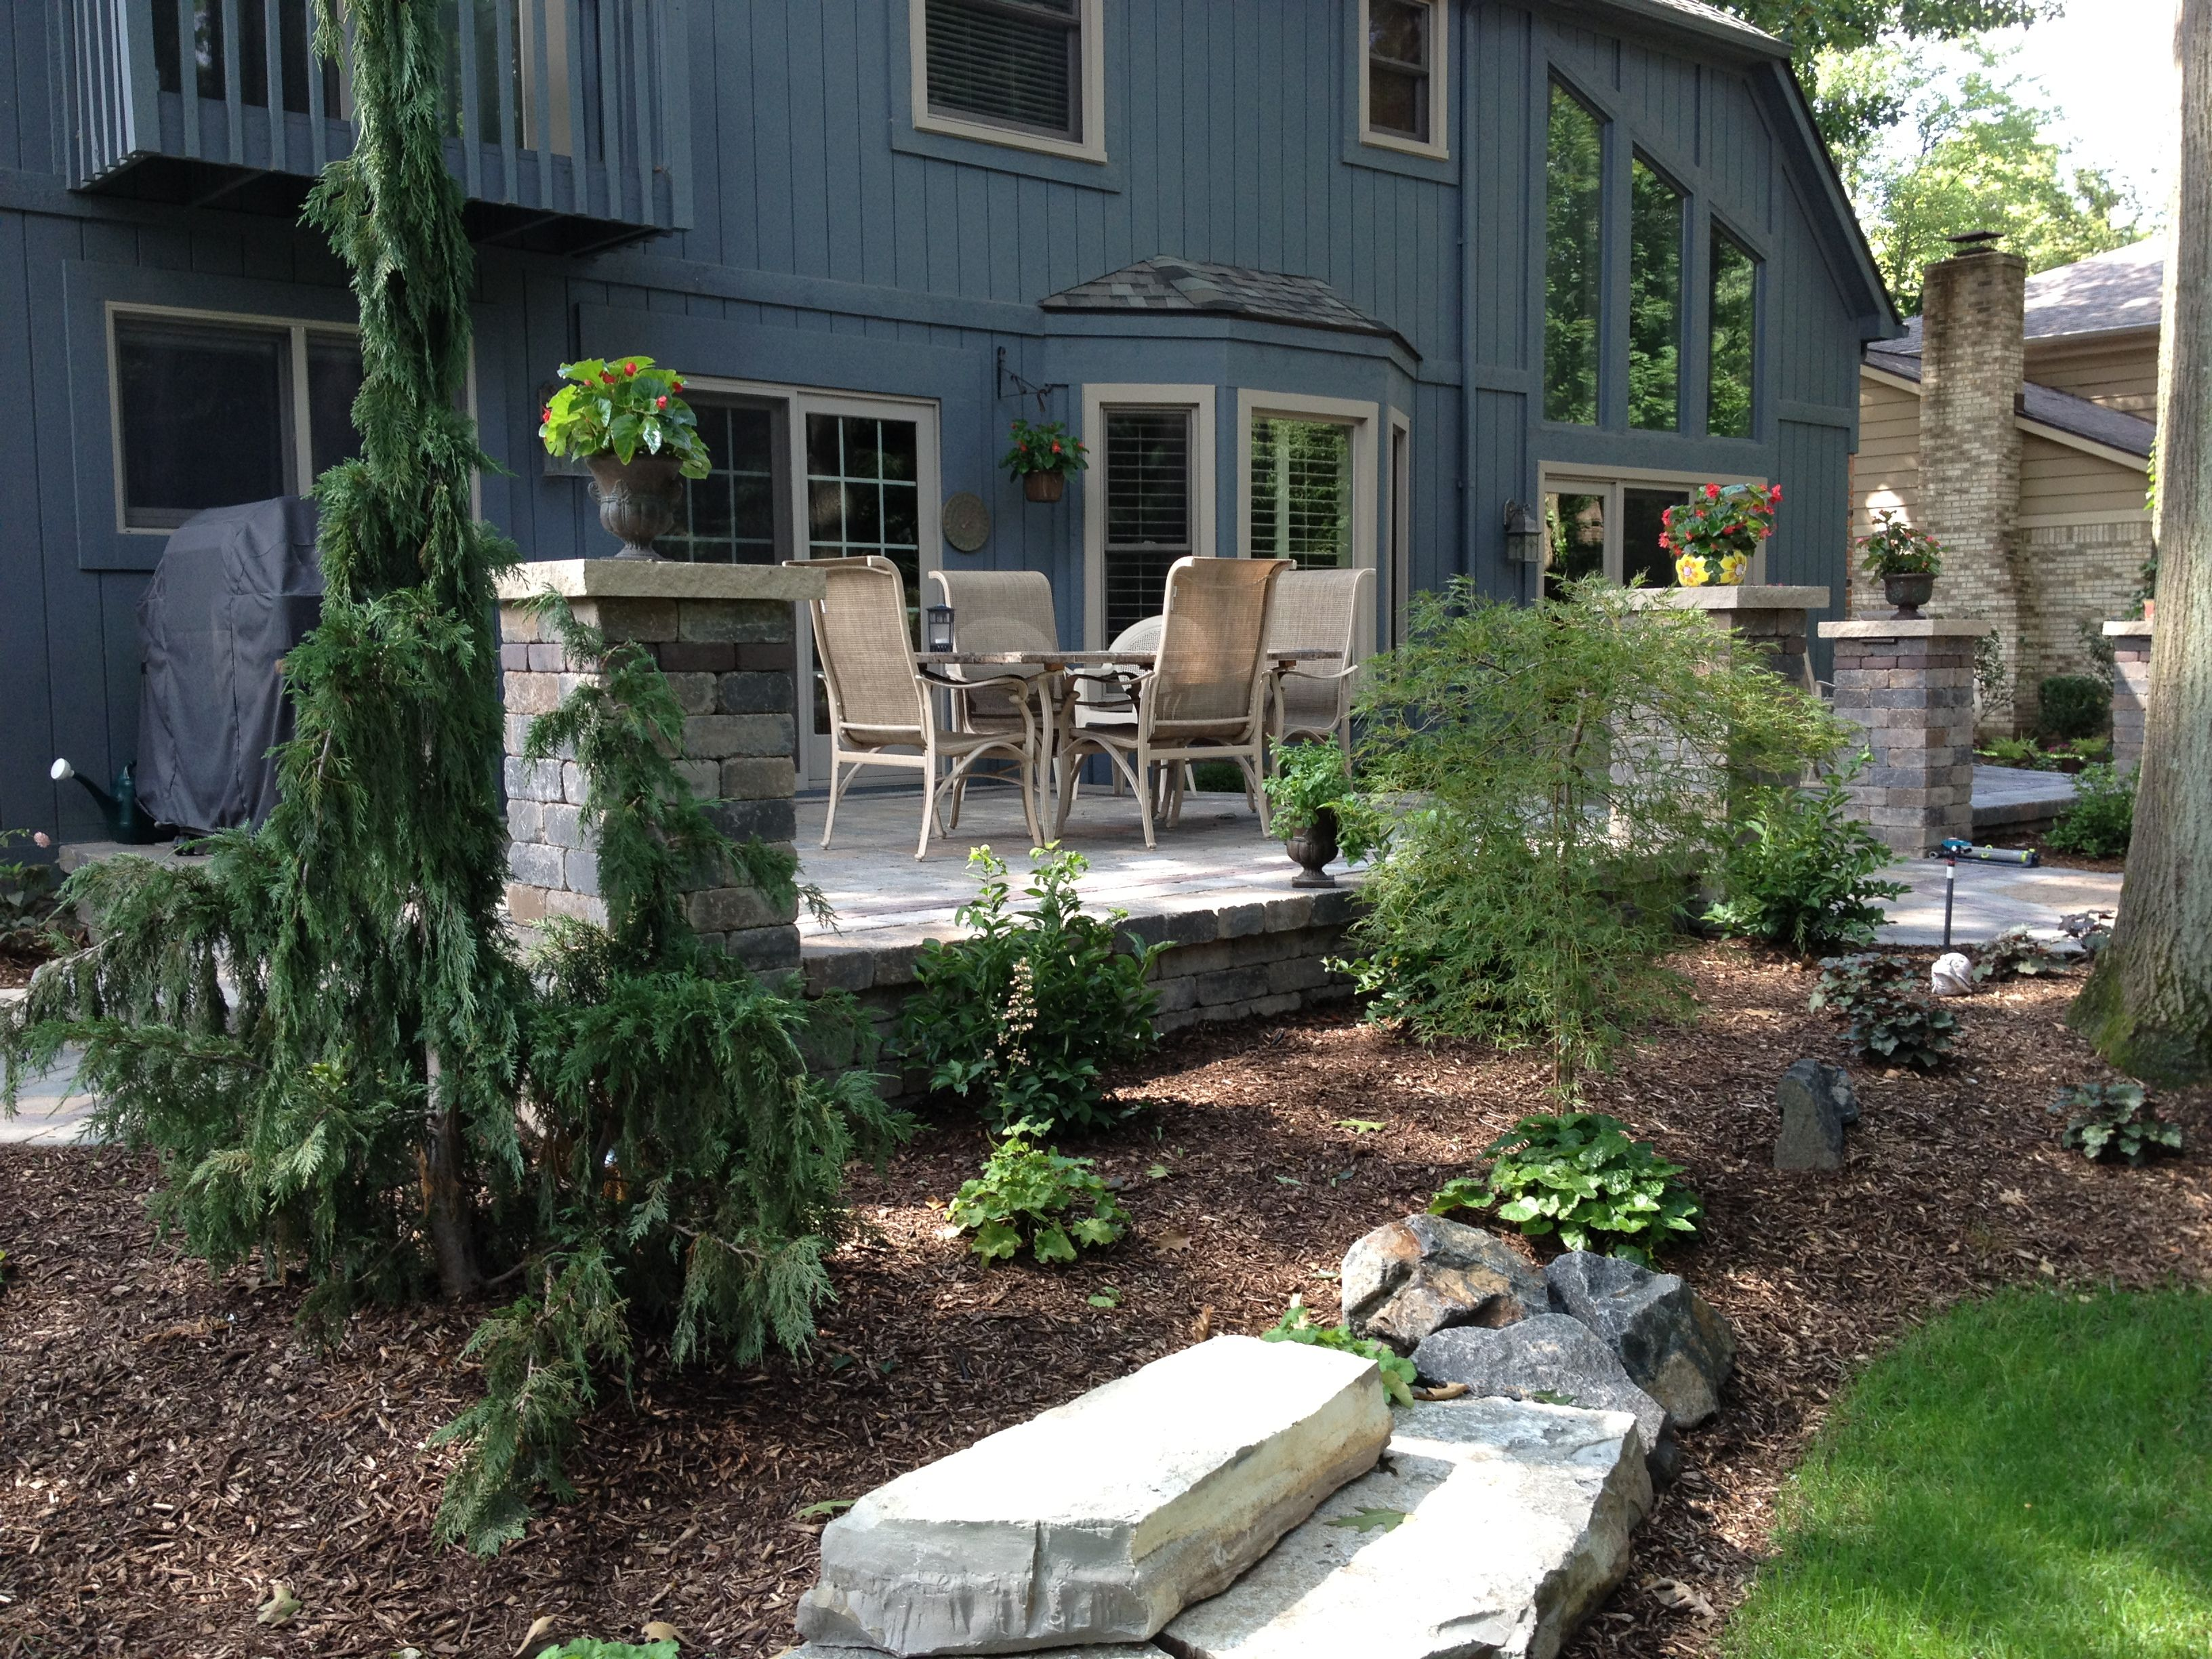 Backyard Hardscape Ideas 15 before and after backyard makeovers hgtv Find This Pin And More On Landscaping Designs Hardscape Ideas